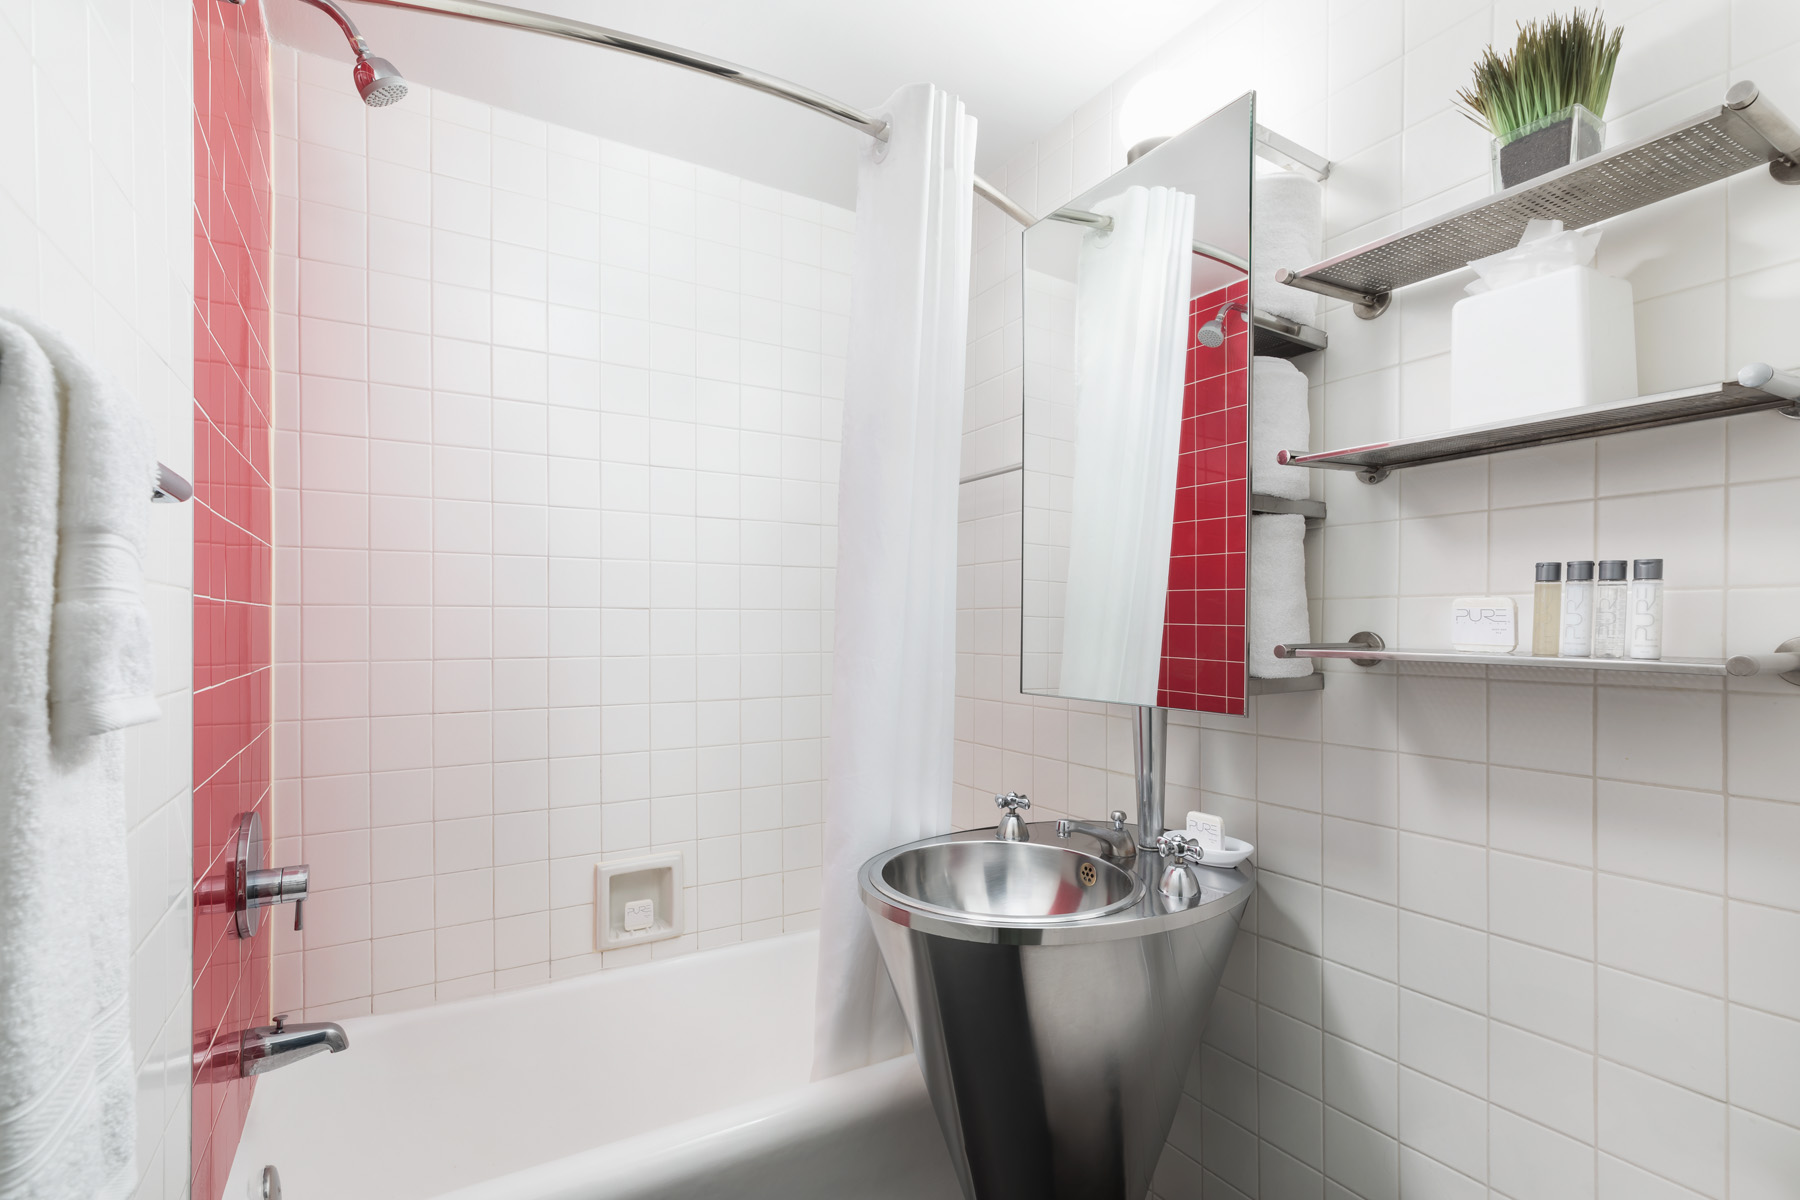 https://www.hotelsbyday.com/_data/default-hotel_image/2/13924/paramount-bathroom.jpg